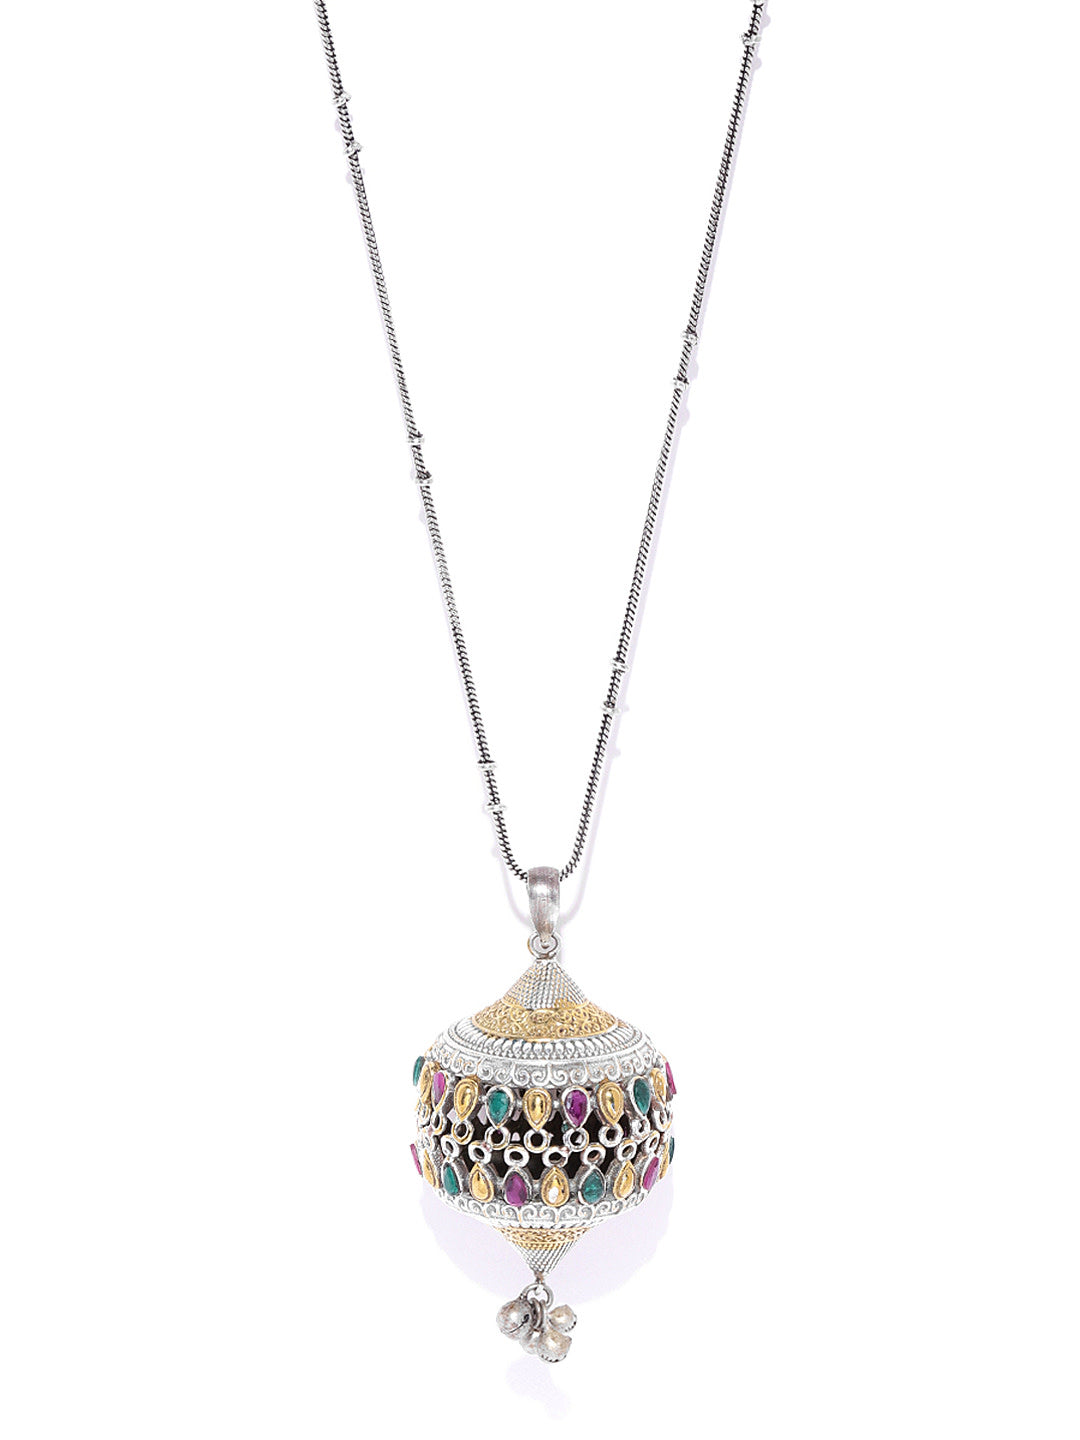 Dual-Toned Multi-Color Stones Silver Plated Ghungroo Pendant